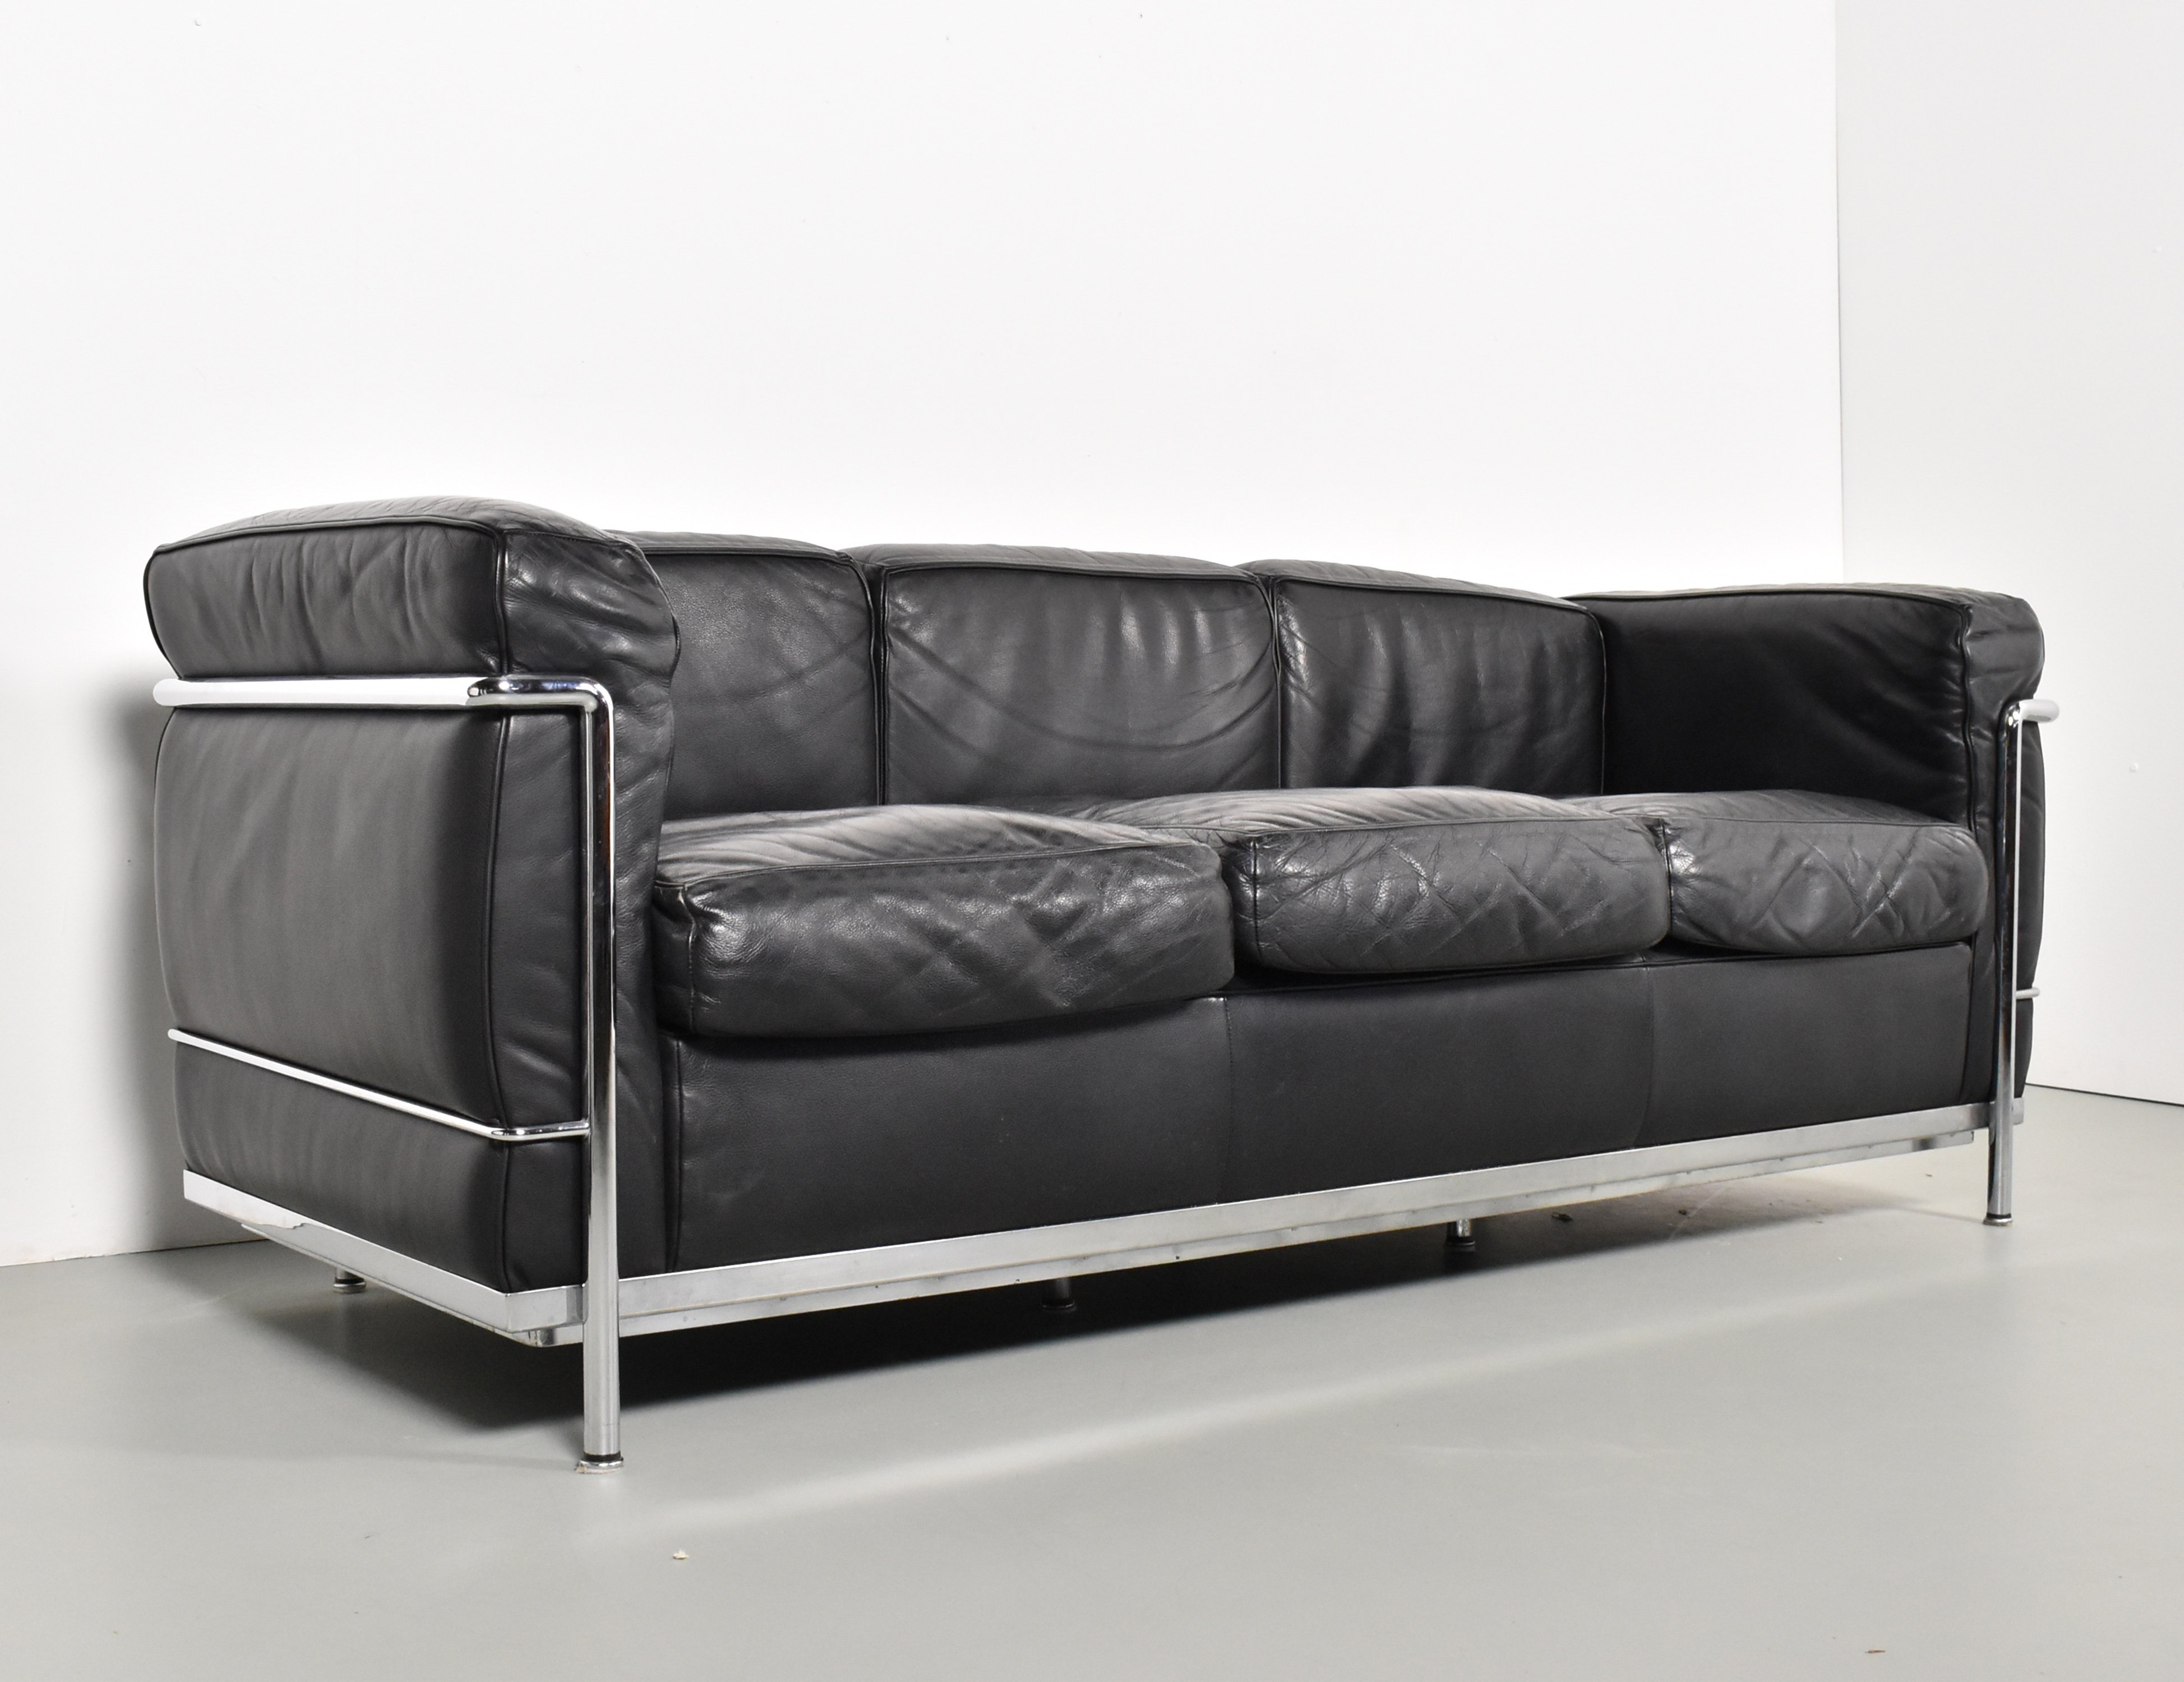 LC21 21 seater sofa by Le Corbusier & Charlotte Perriand for Cassina ...